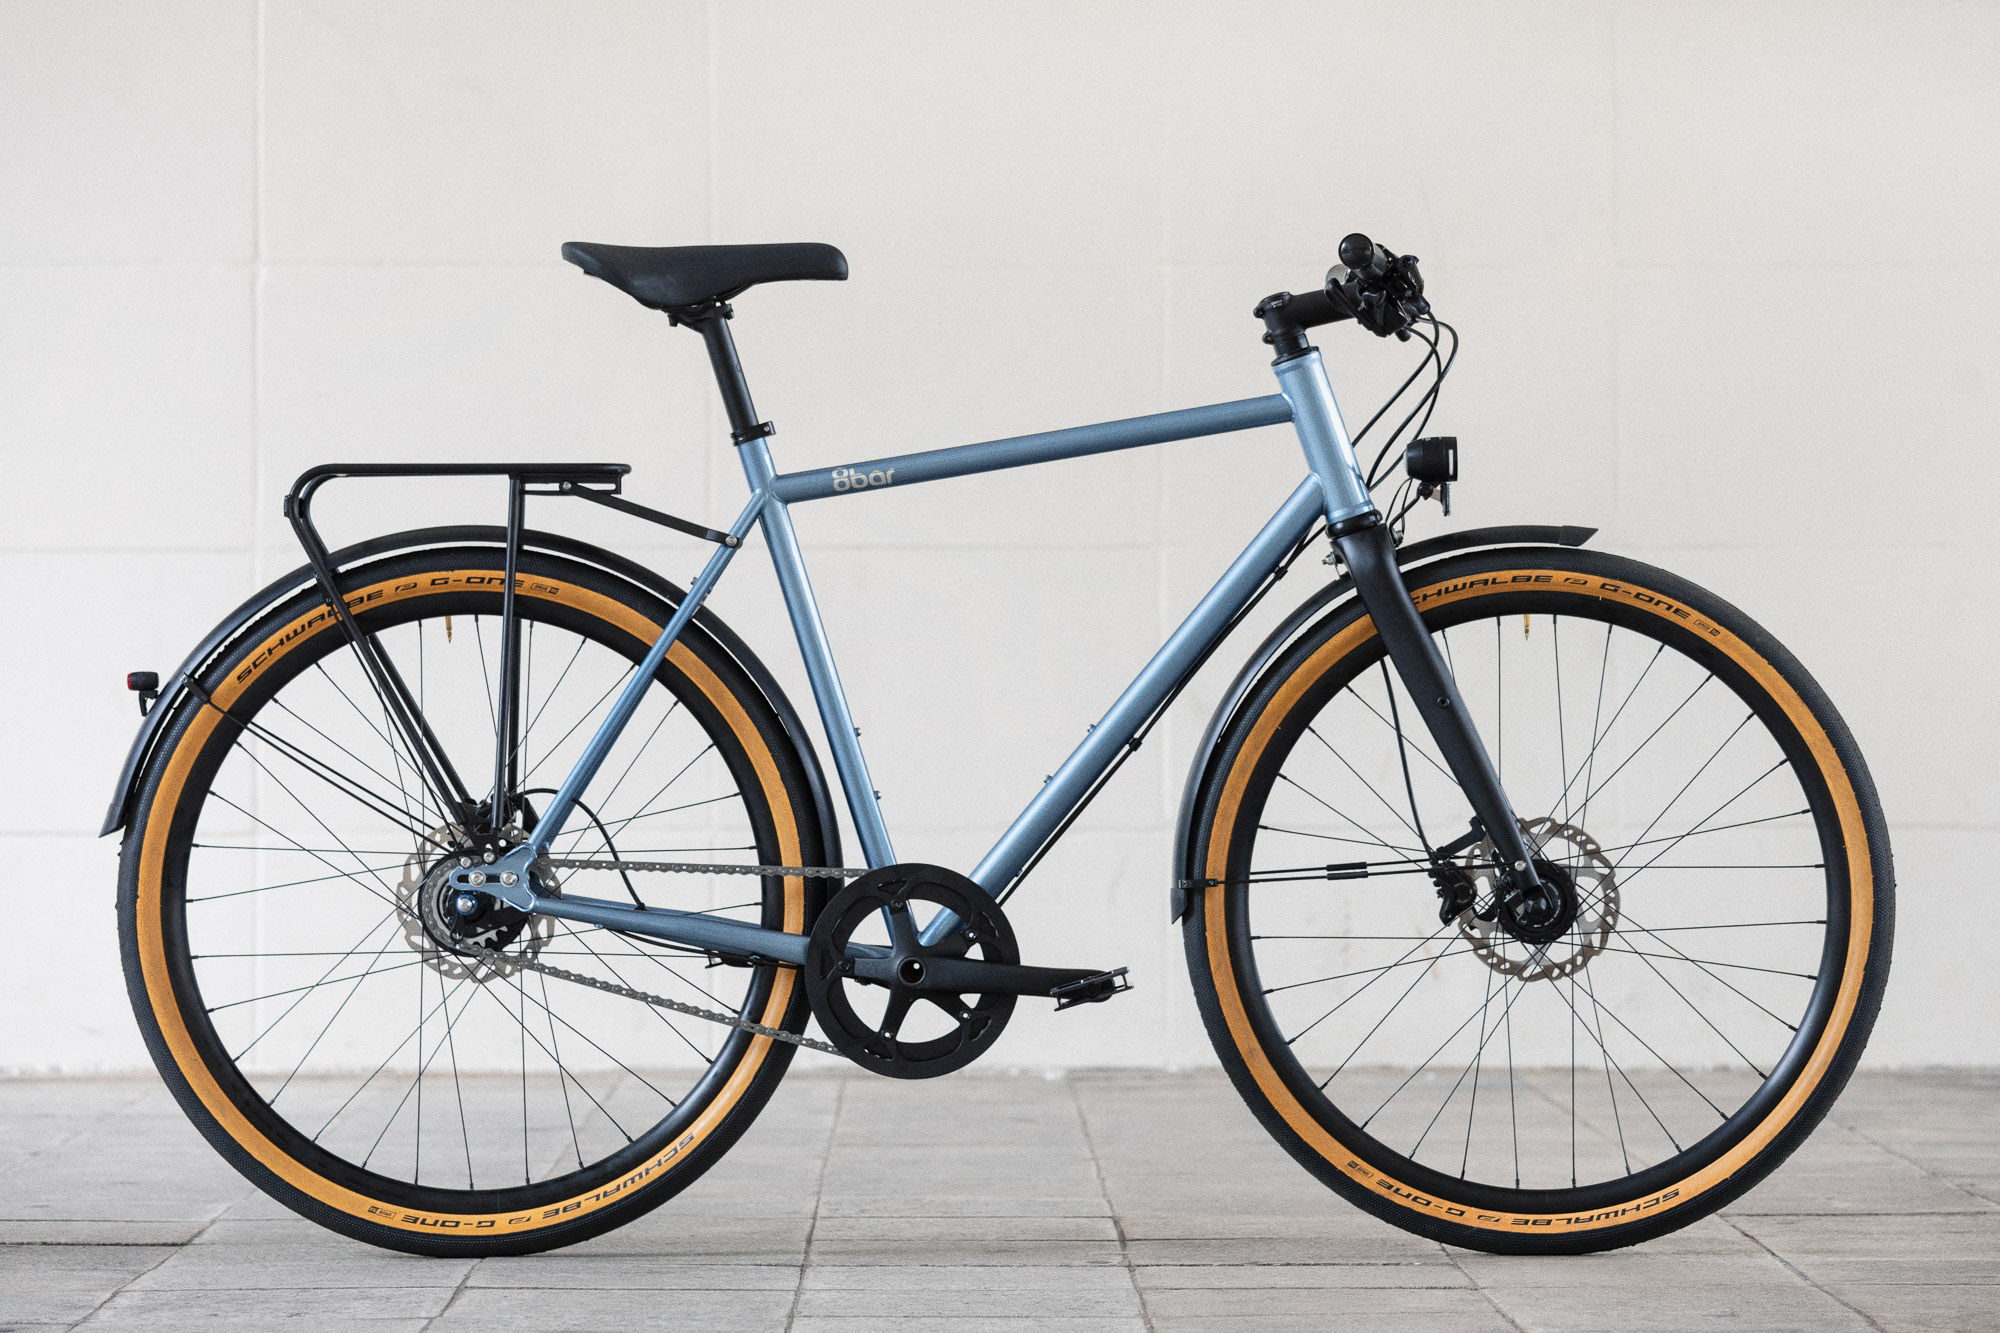 8bar-complete-bike-mitte-steel-blue-urban-lr-1